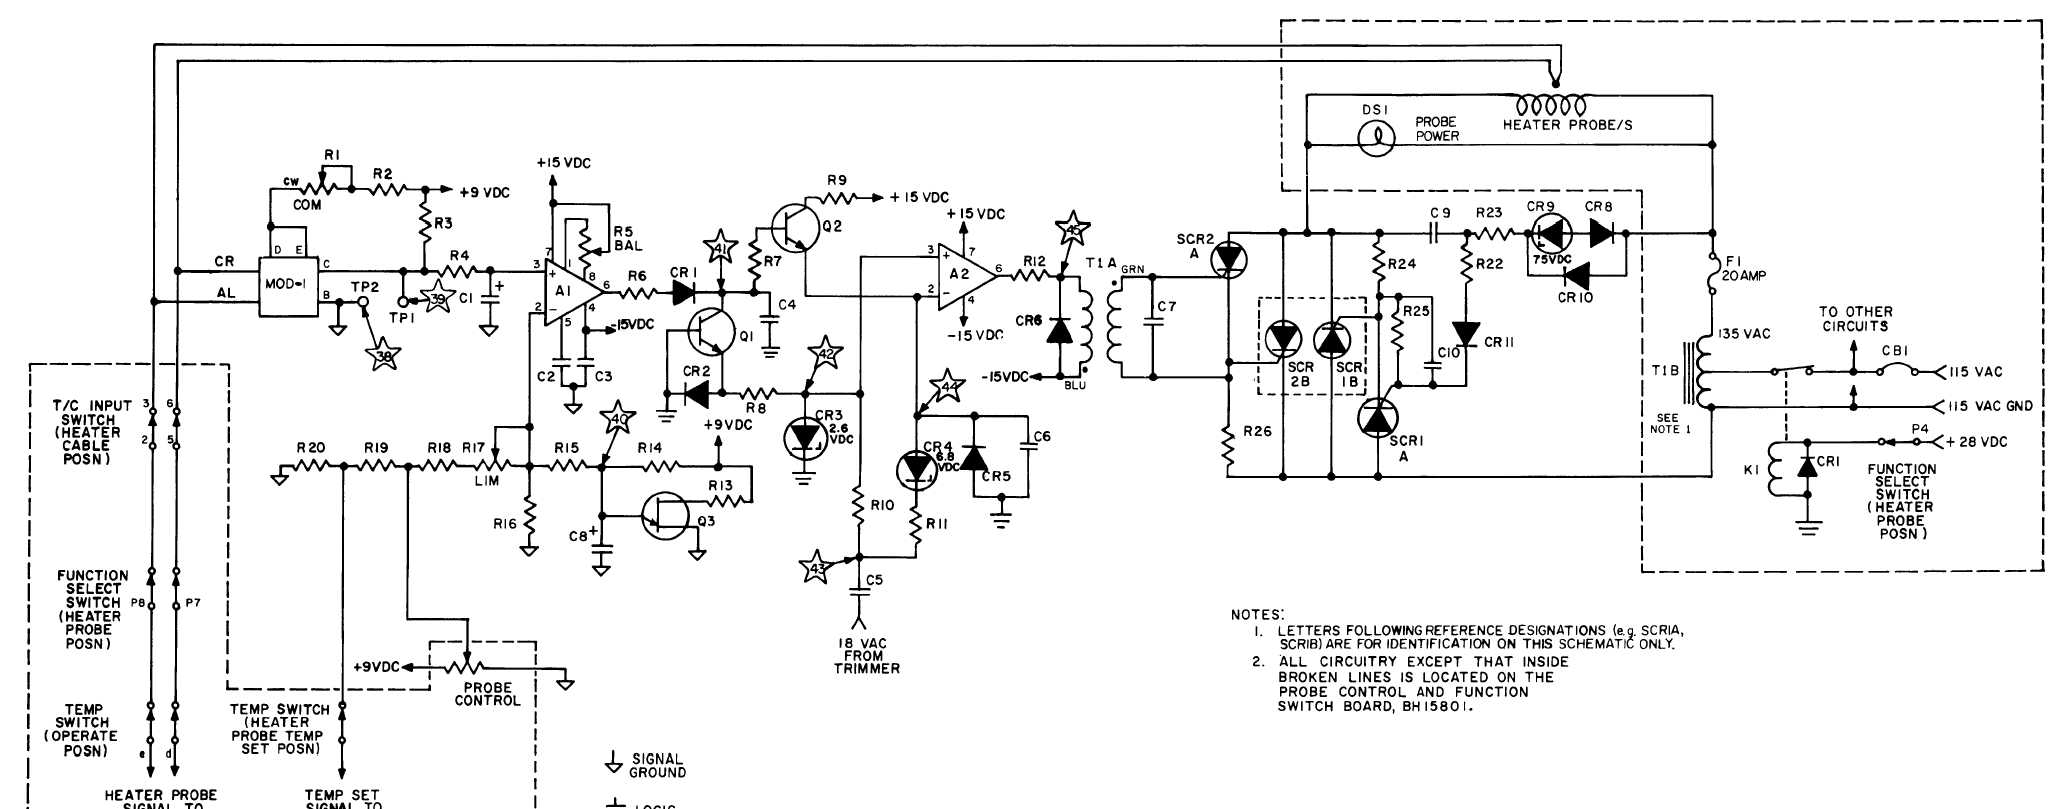 TM 55 4920 401 13P 257 on solar system circuit diagram